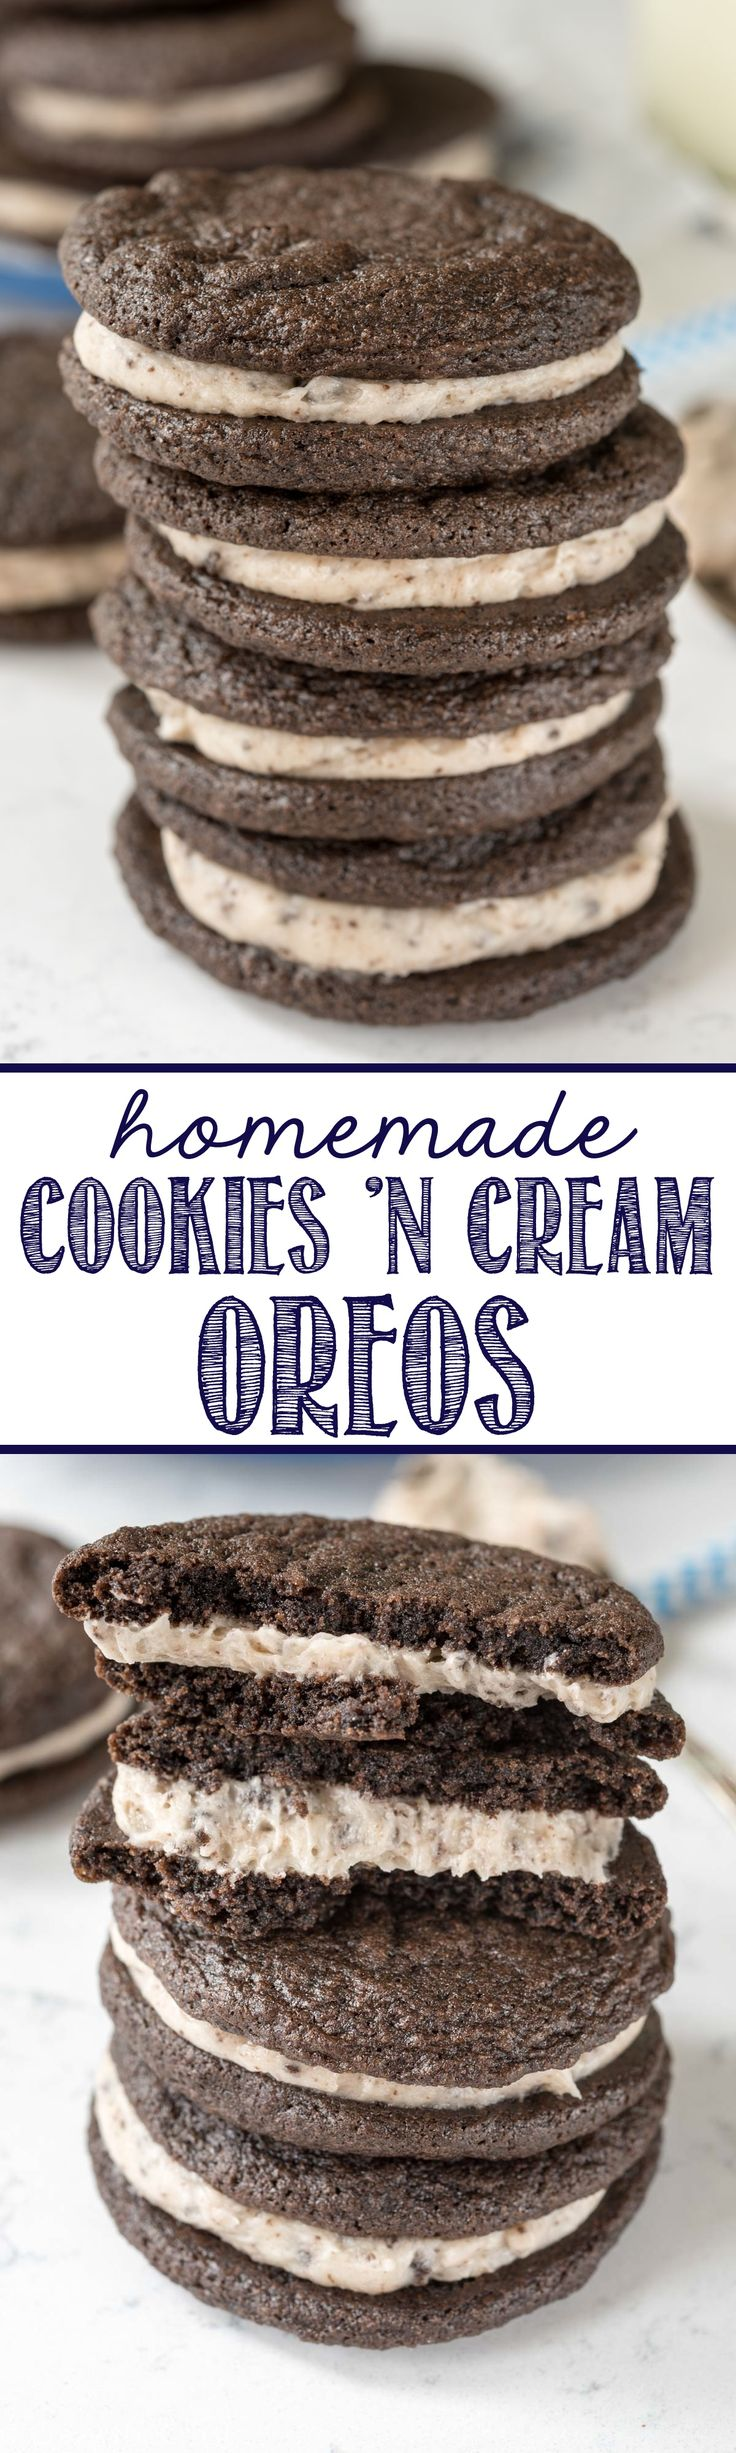 Homemade Cookies 'n Cream Oreos - this easy recipe is completely from scratch! Make soft homemade Oreos and fill them with a cookies 'n cream filling!